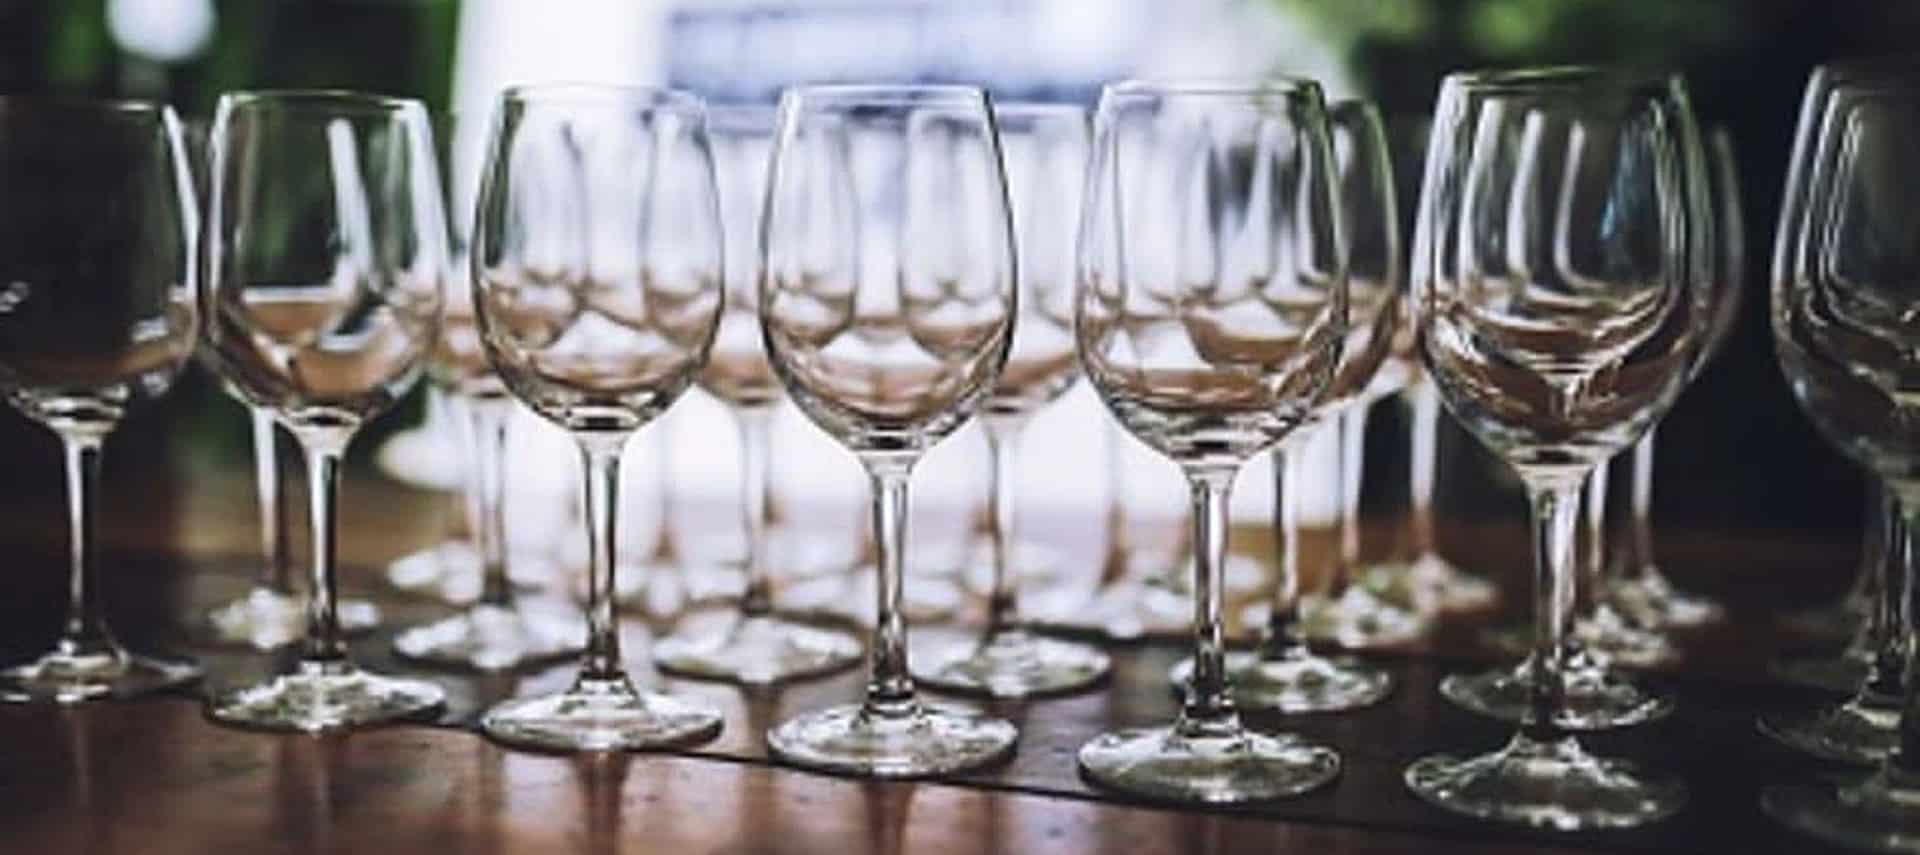 A dark brown table holding numerous empty crystal clear tall glasses of wine.